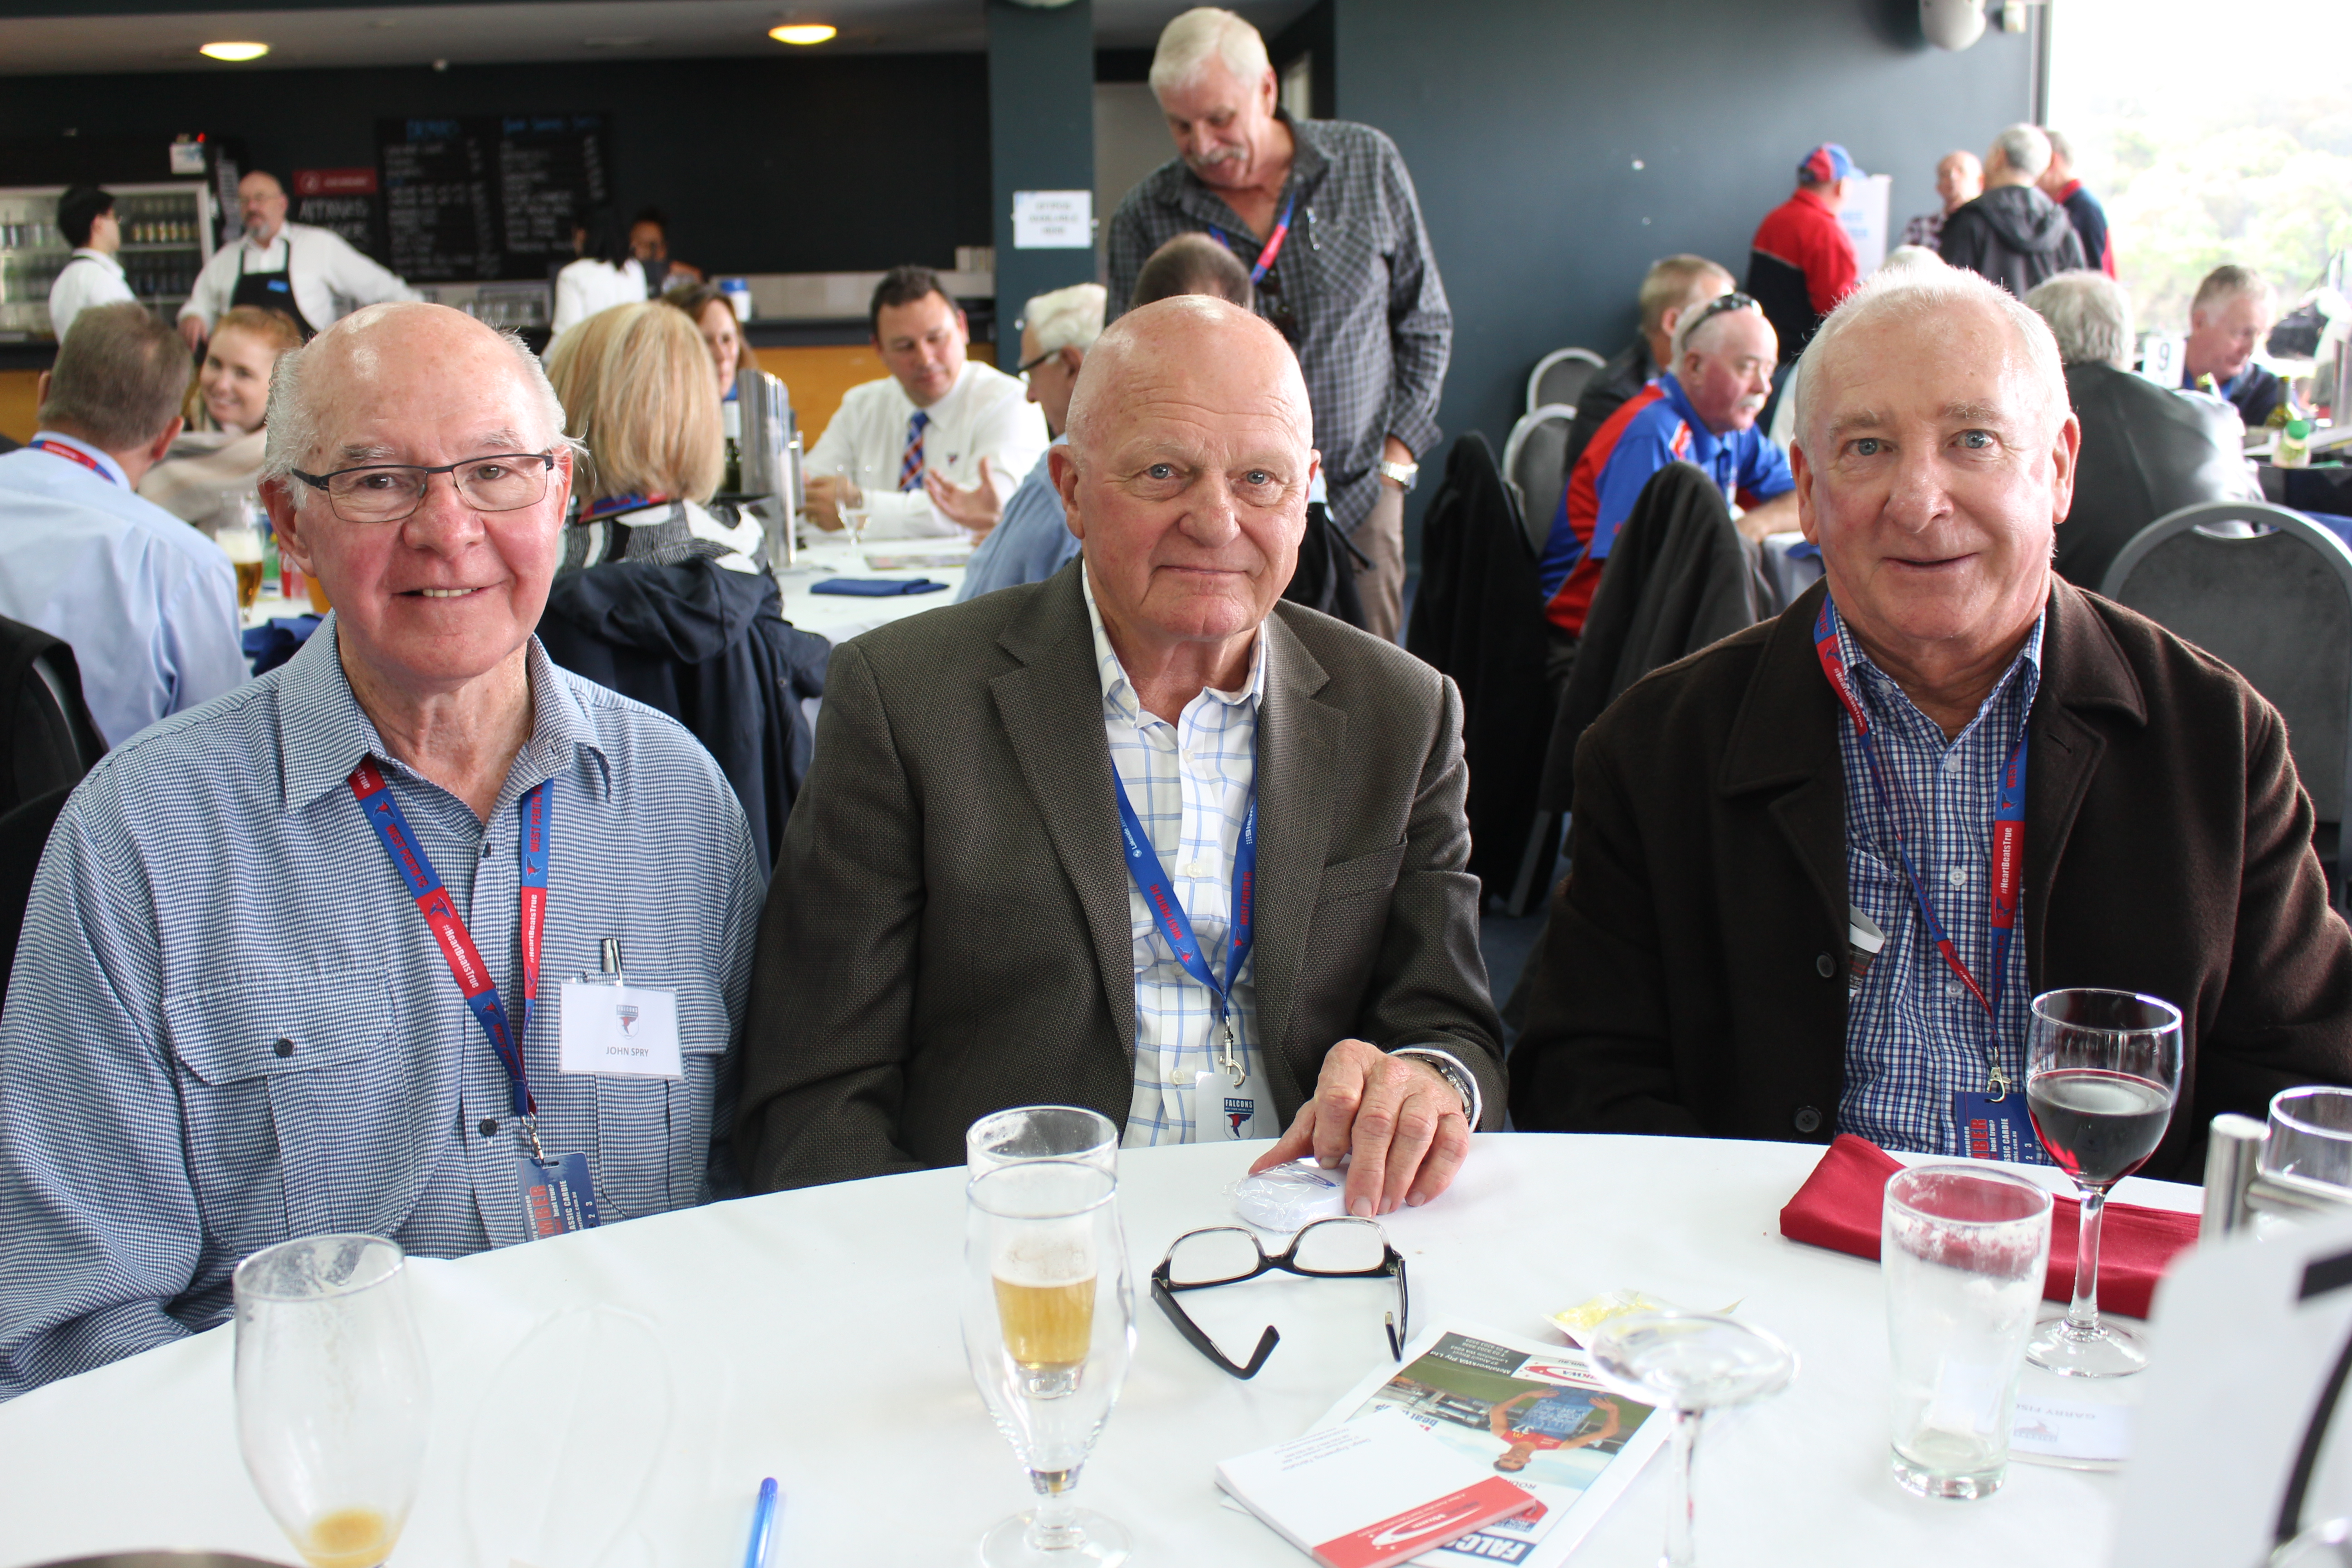 John Spry, Richie Haddow and Garry Fischer.